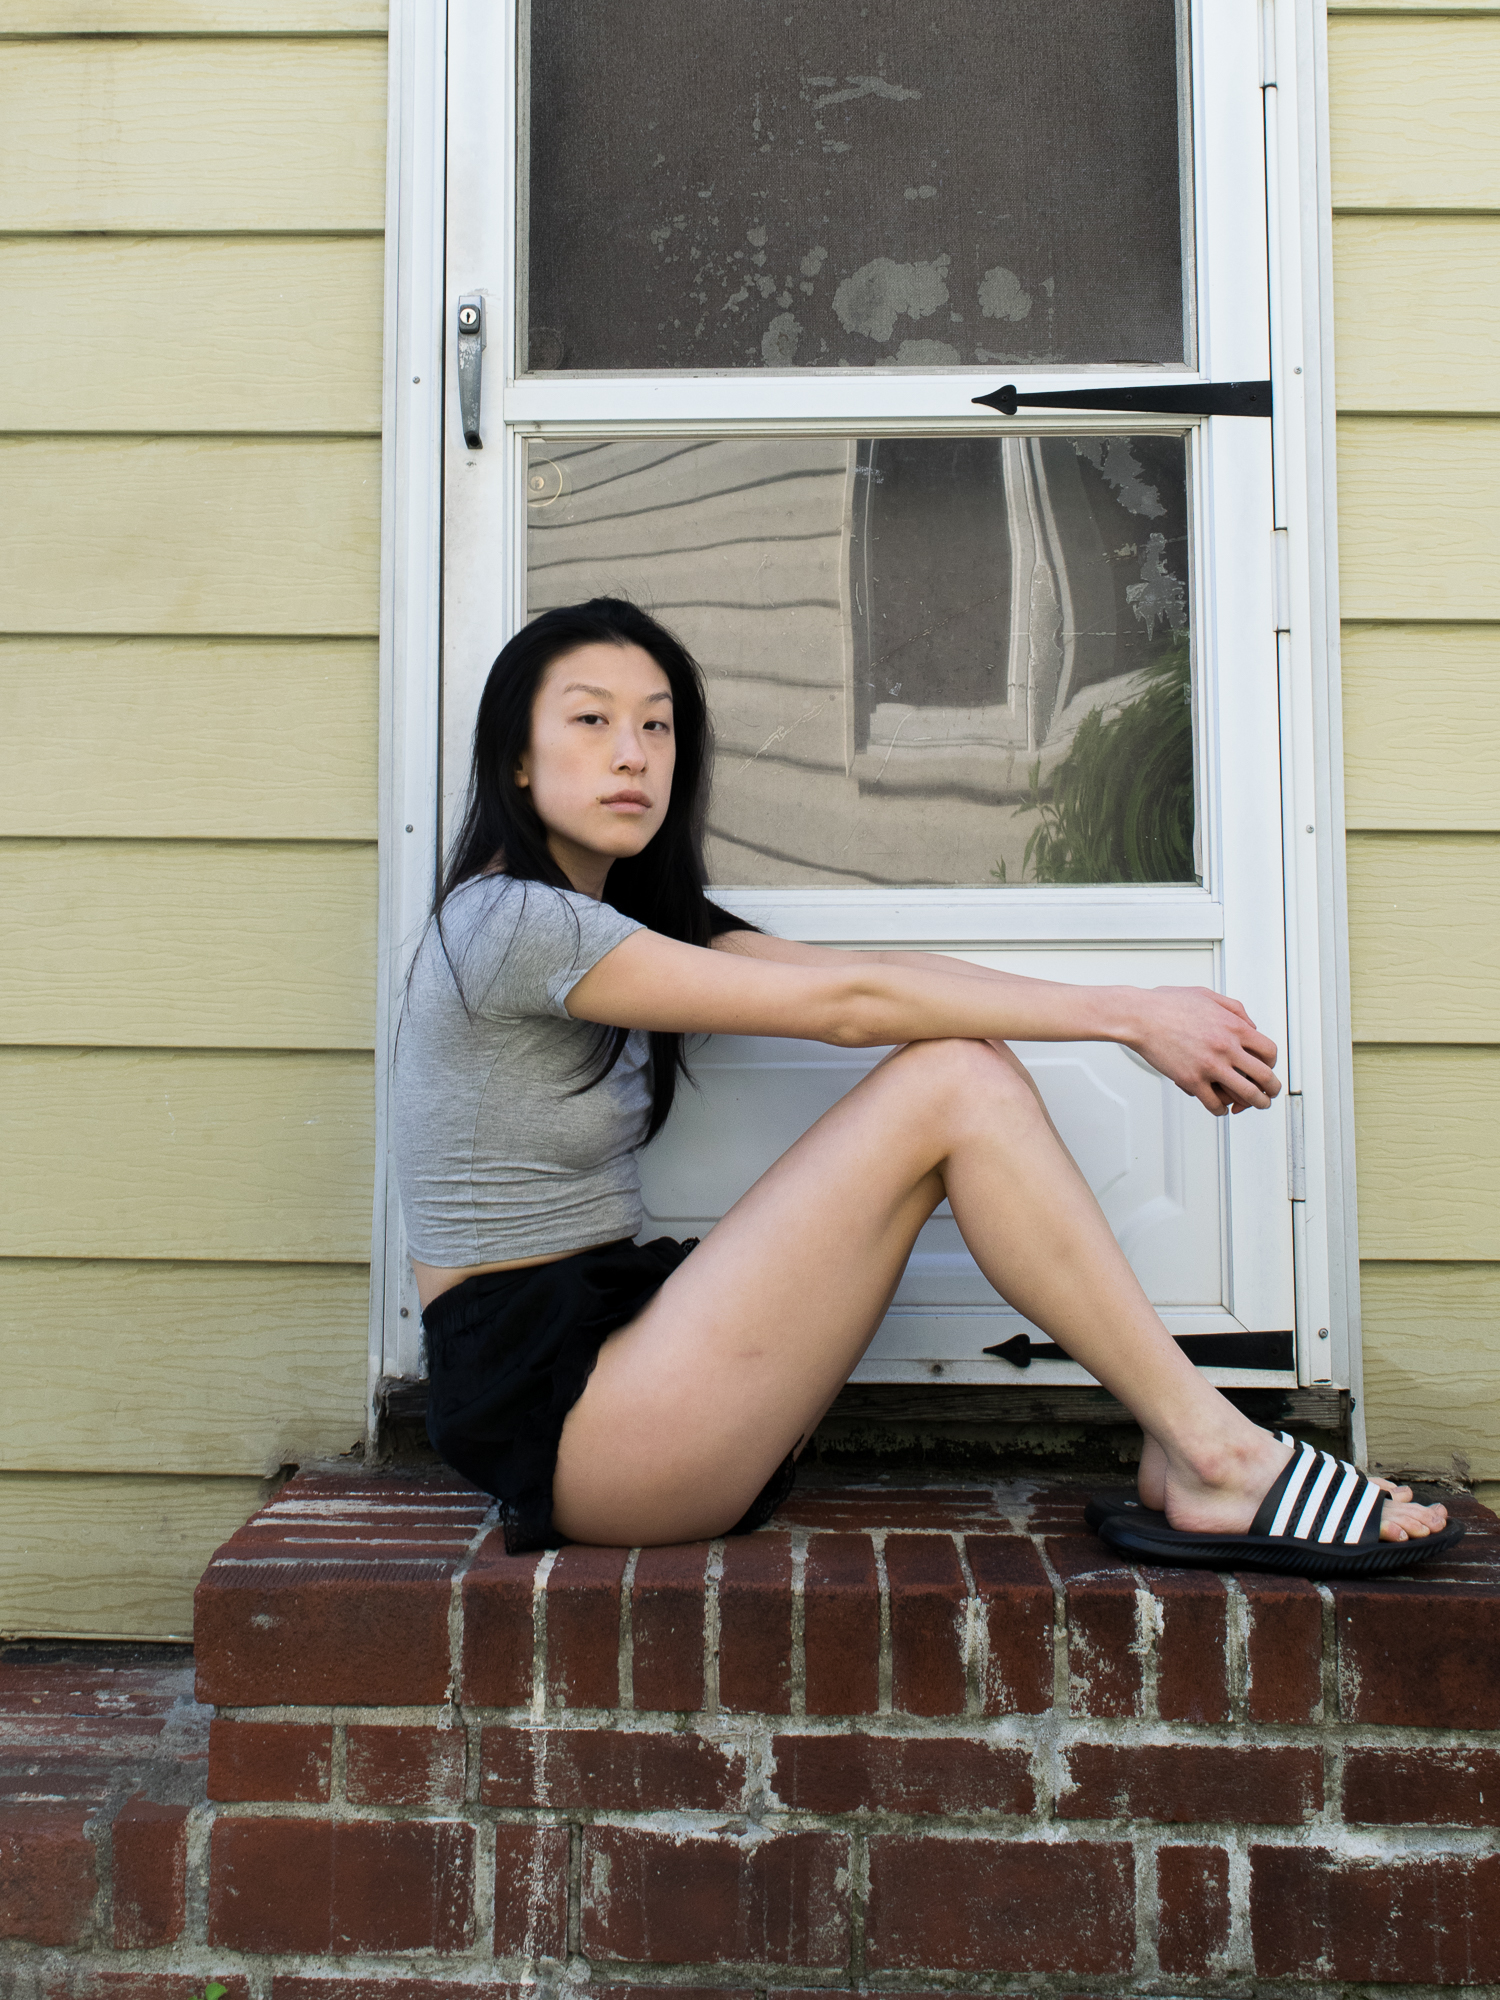 Female, east asian blogger in grey cropped t-shirt, lacy black shorts, black and white striped sandals, sitting on brick stoop